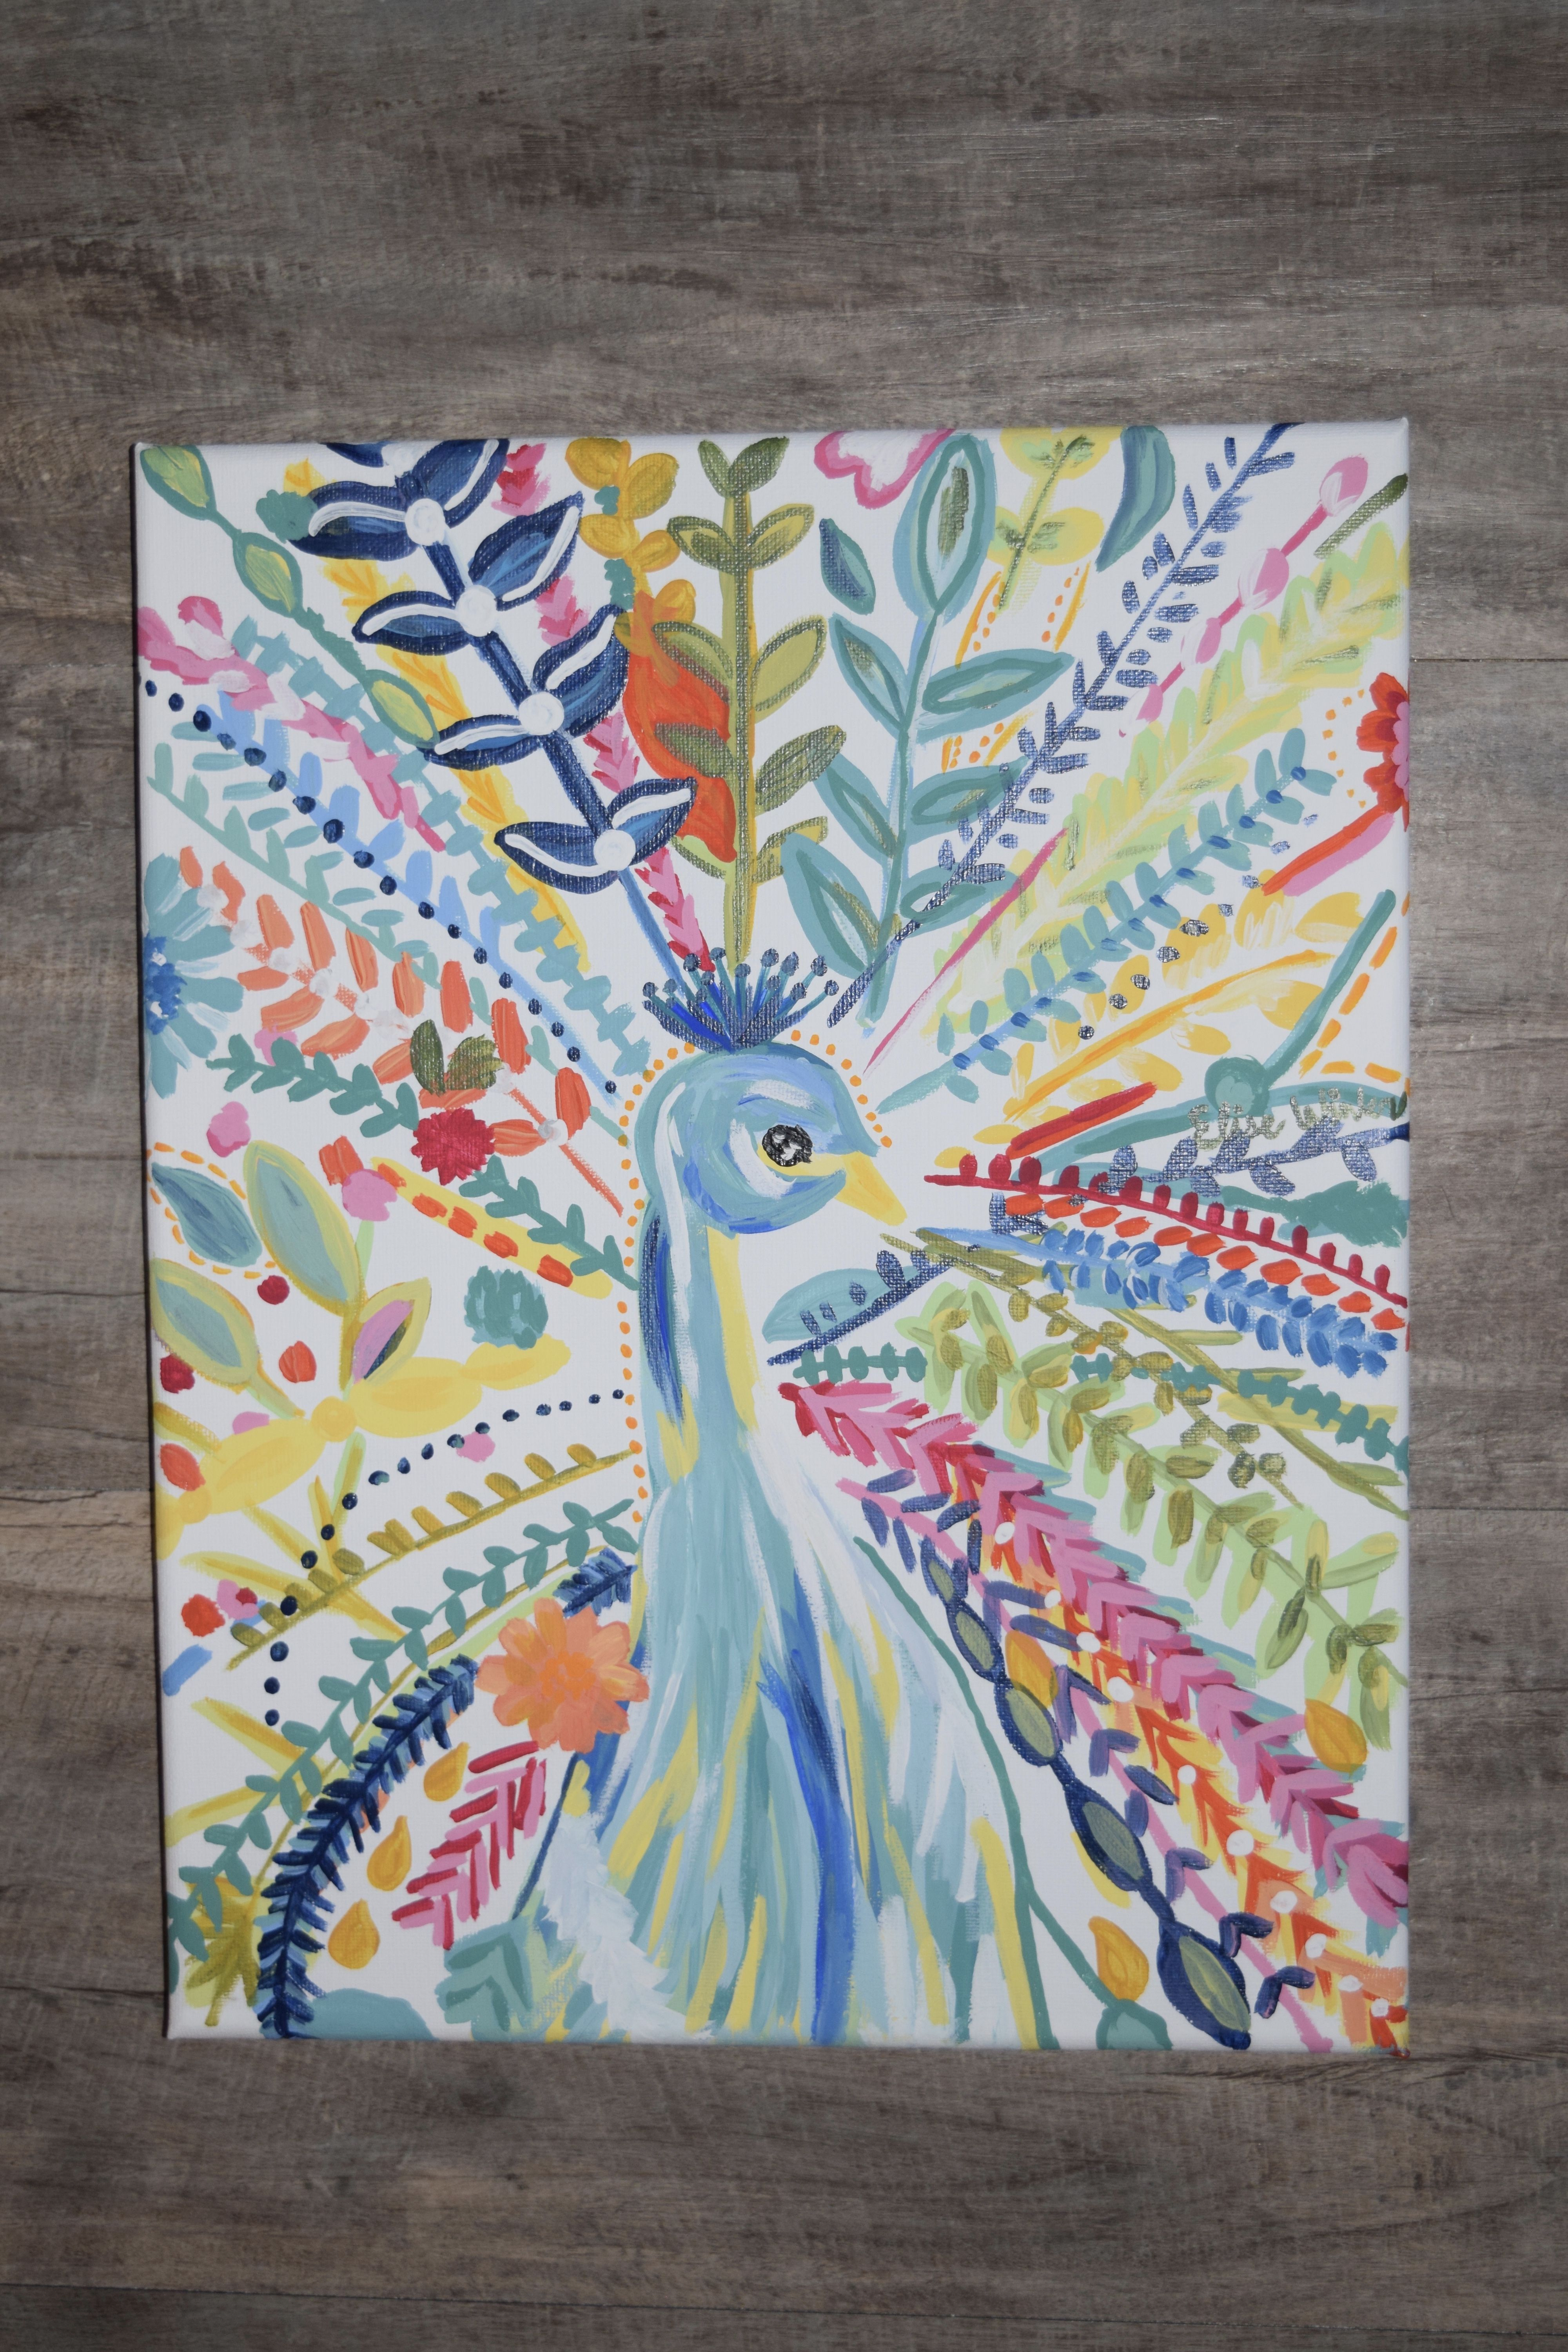 Abstract Peacock hand painted by Elise Winter